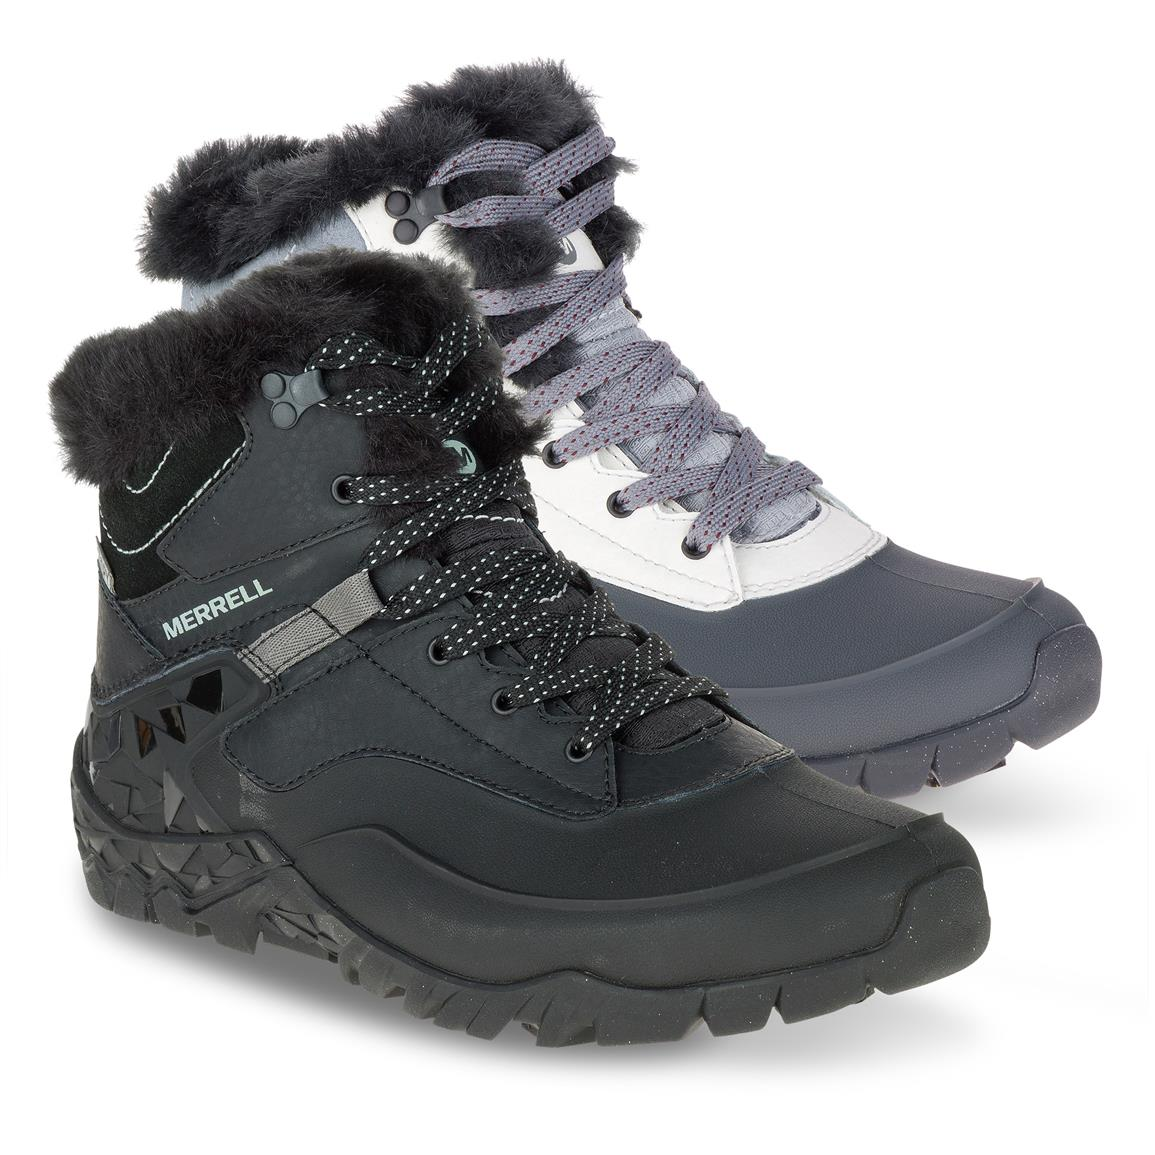 Merrell Women's Aurora 6 Ice+Waterproof Hiking Boots